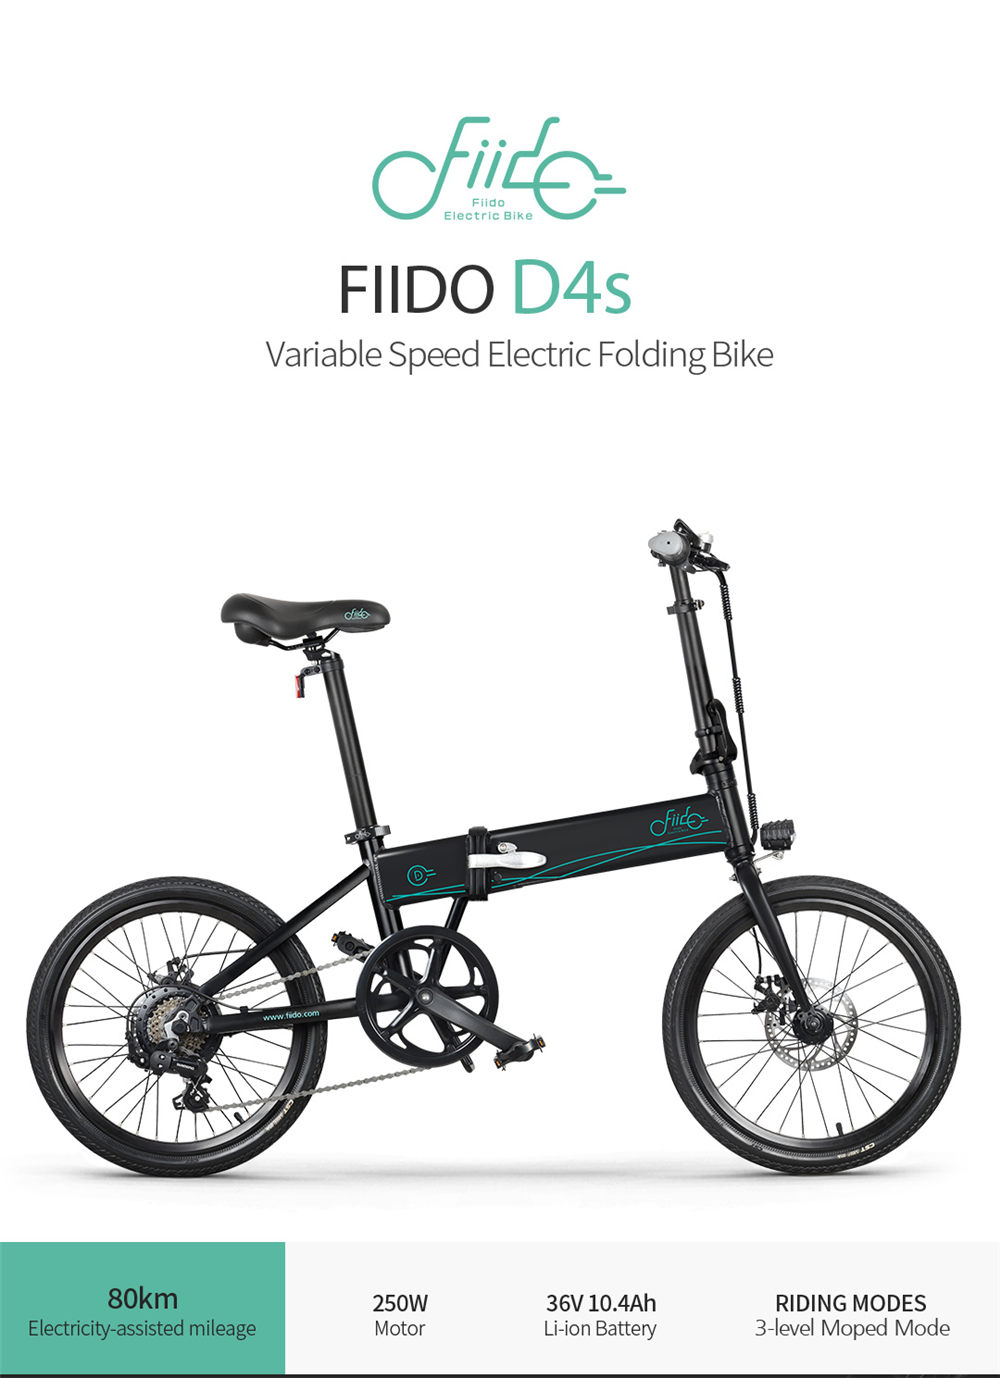 FIIDO D4S Folding Moped Electric Bike Shimano 6-speed Gear Shifting City Bike Commuter Bike 20-inch Tires 250W Motor Max 25km/h 10.4Ah Battery up to 80KM Mileage Range - Black